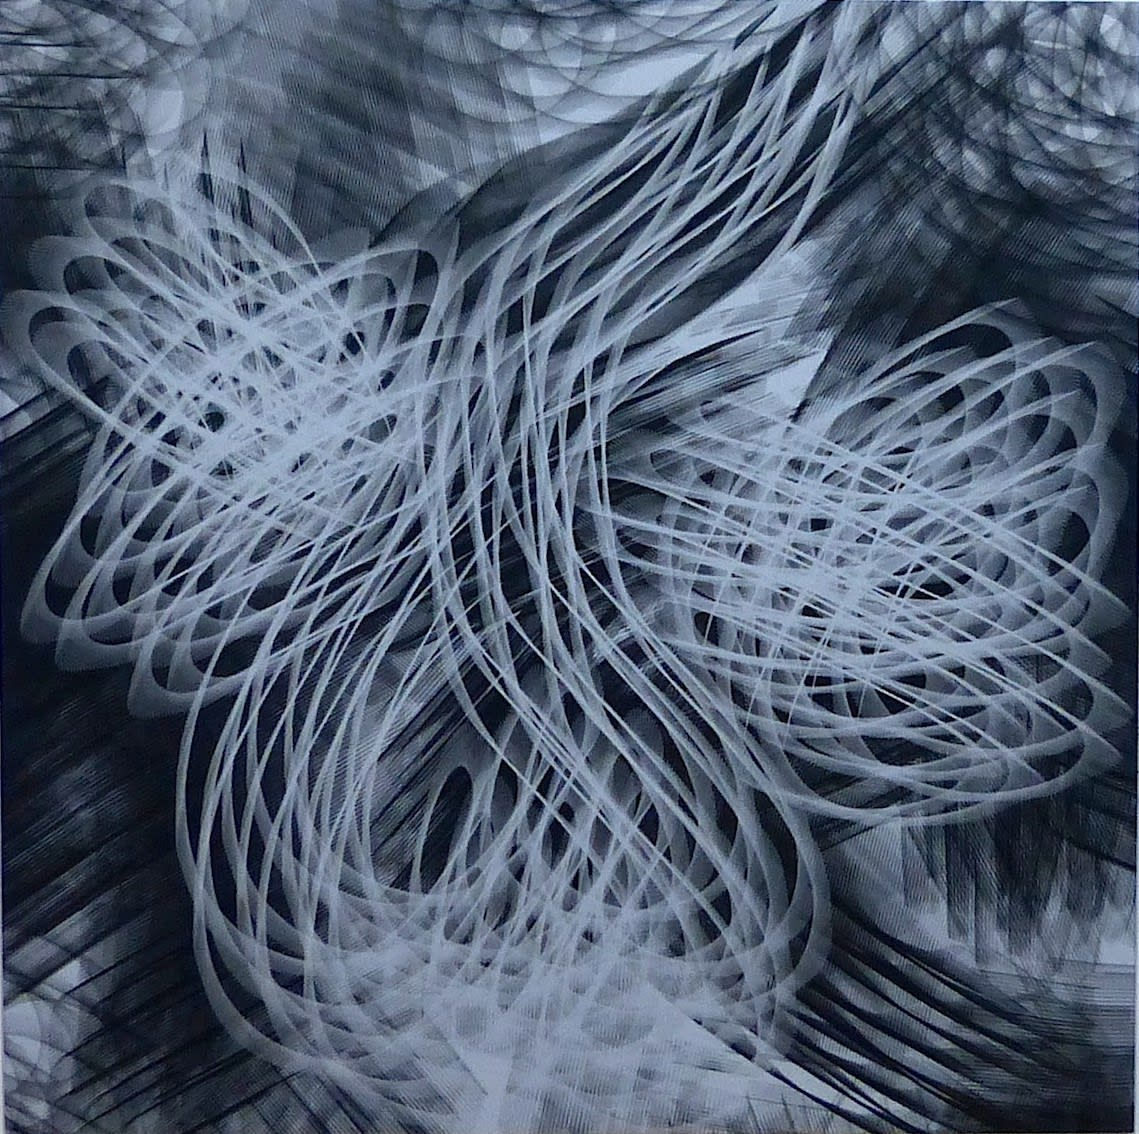 SONJA WEBER Traces, 2019 jacquard 175 x 175cm signed and dated